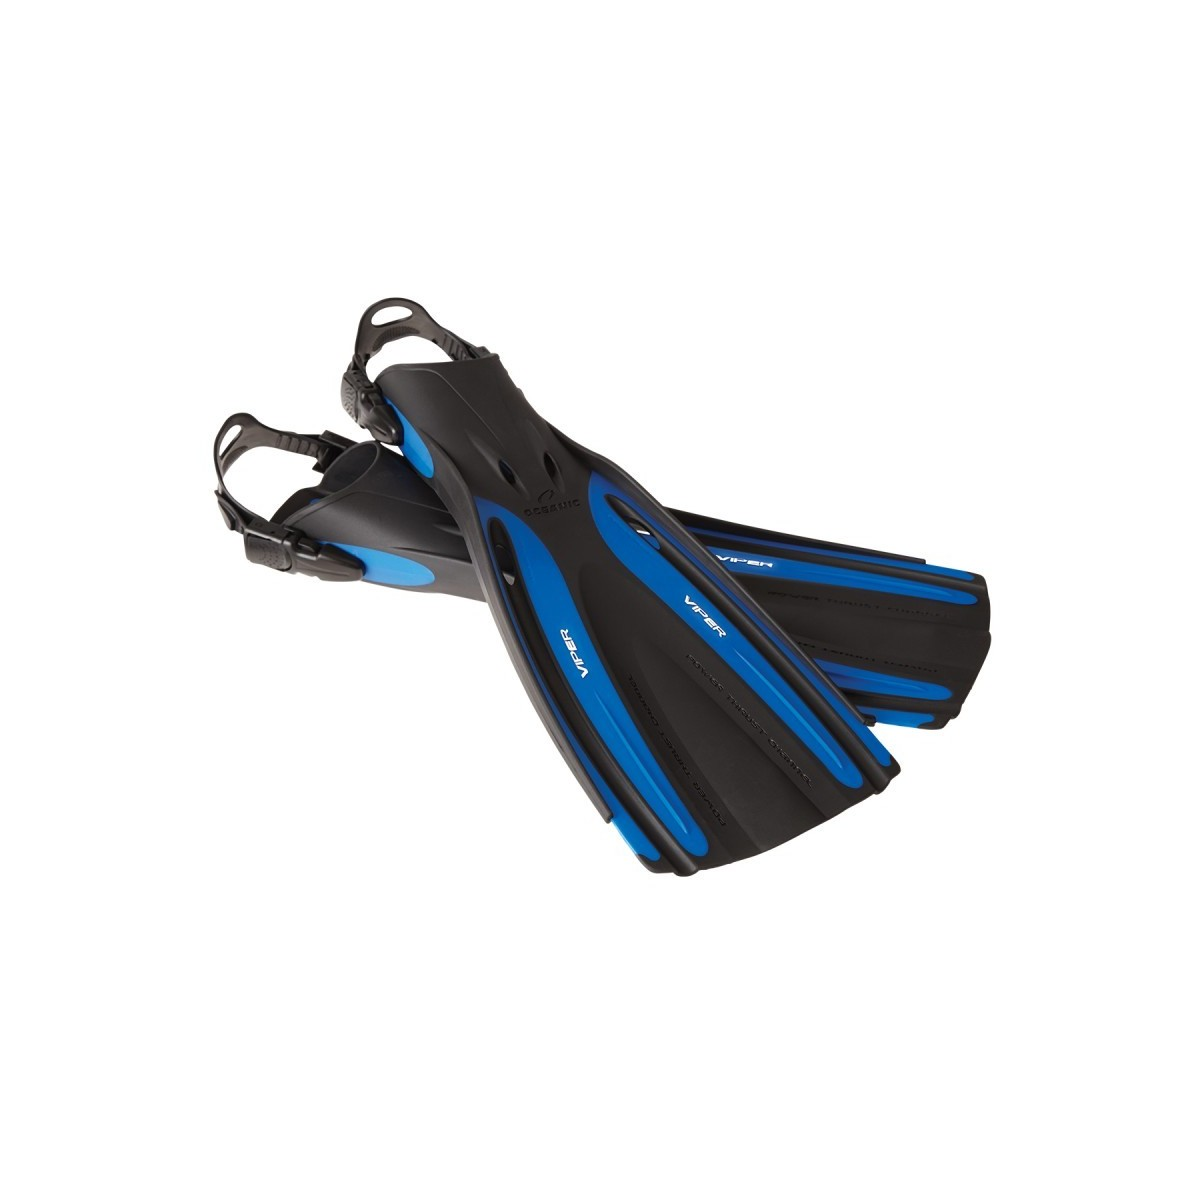 Oceanic Viper Open Heel Diving Fins